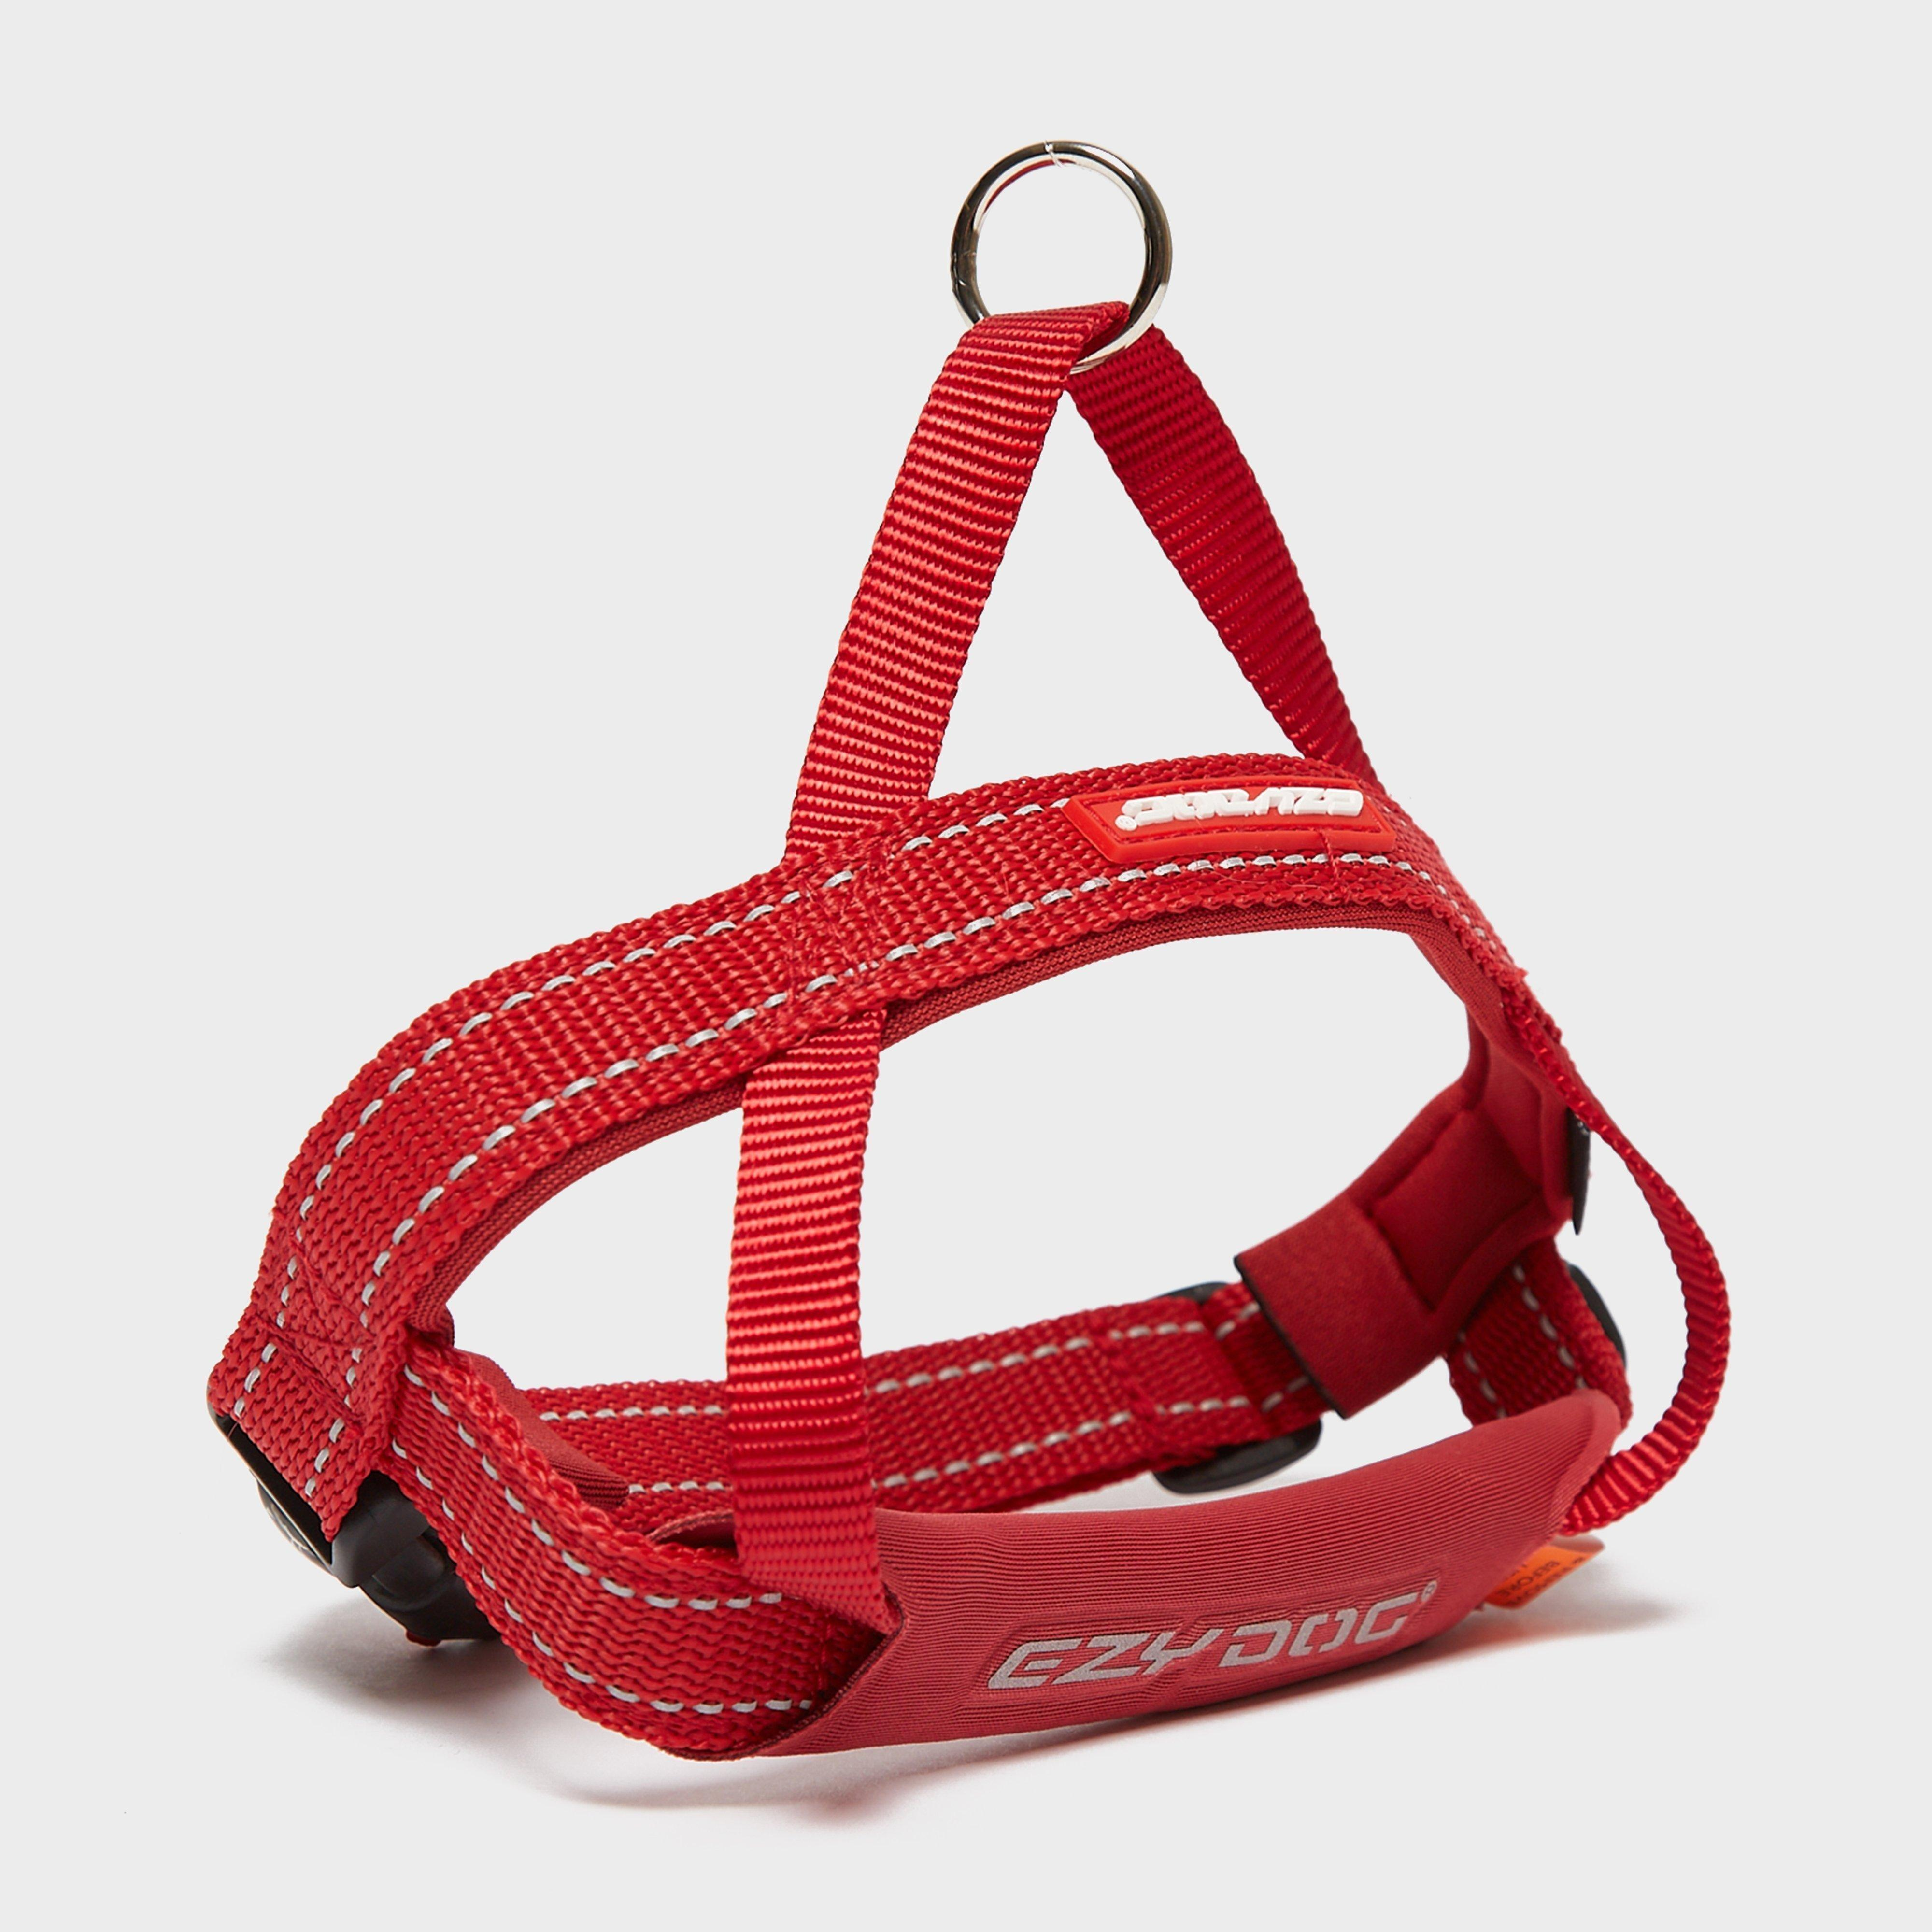 Image of Ezy-Dog Ezydog Quick Fit - Red/Harness, Red/HARNESS